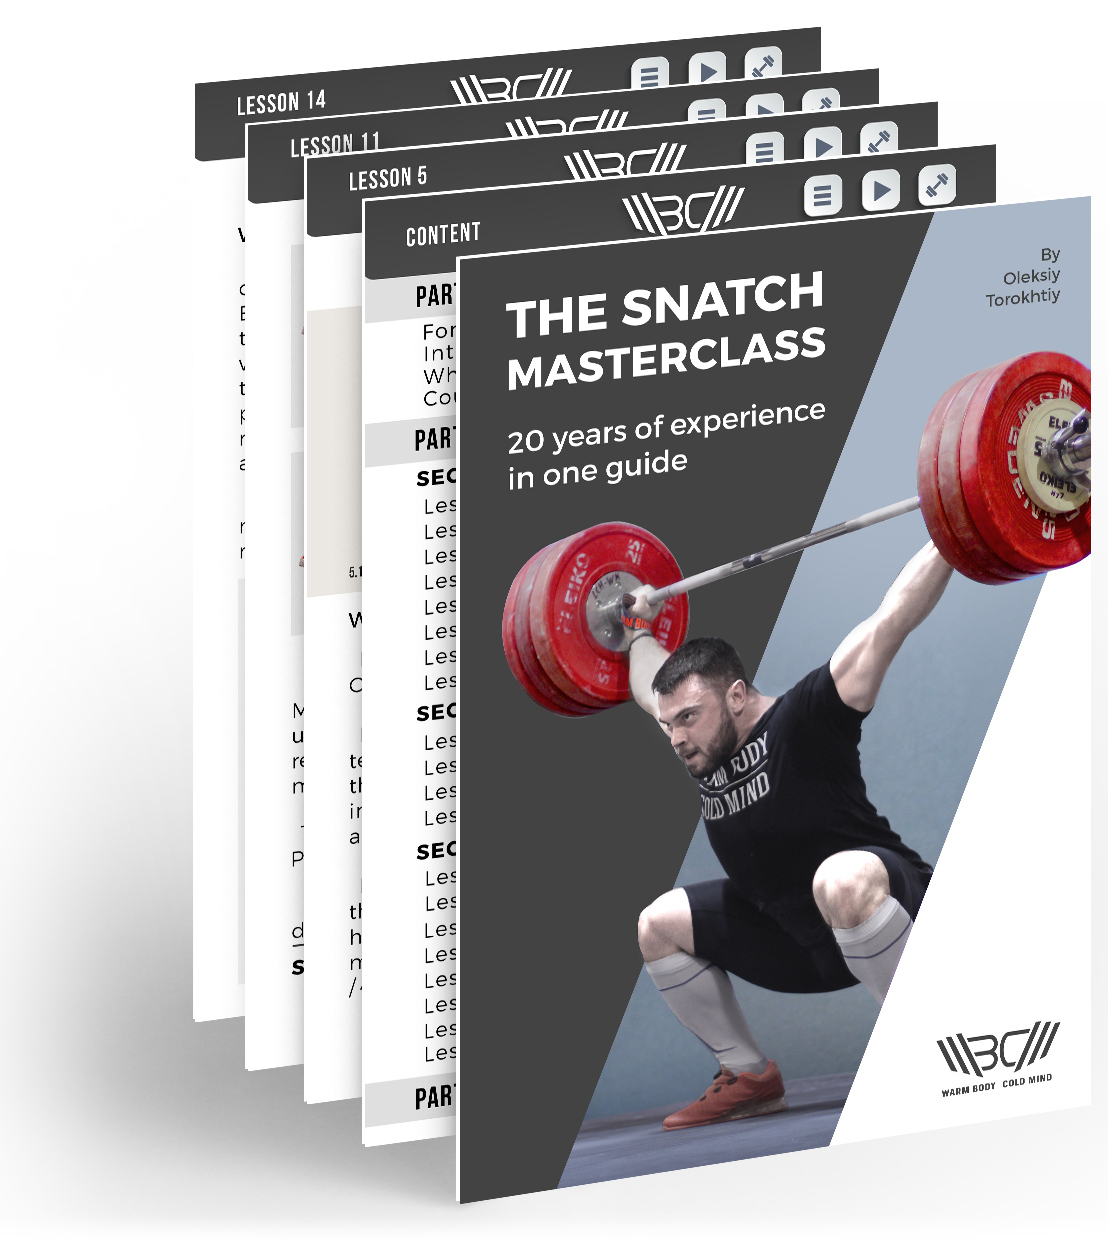 snatch olympic weightlifting masterclass technique simple torokhtiy lifting program programs step individuals broken learning course complete lessons provide